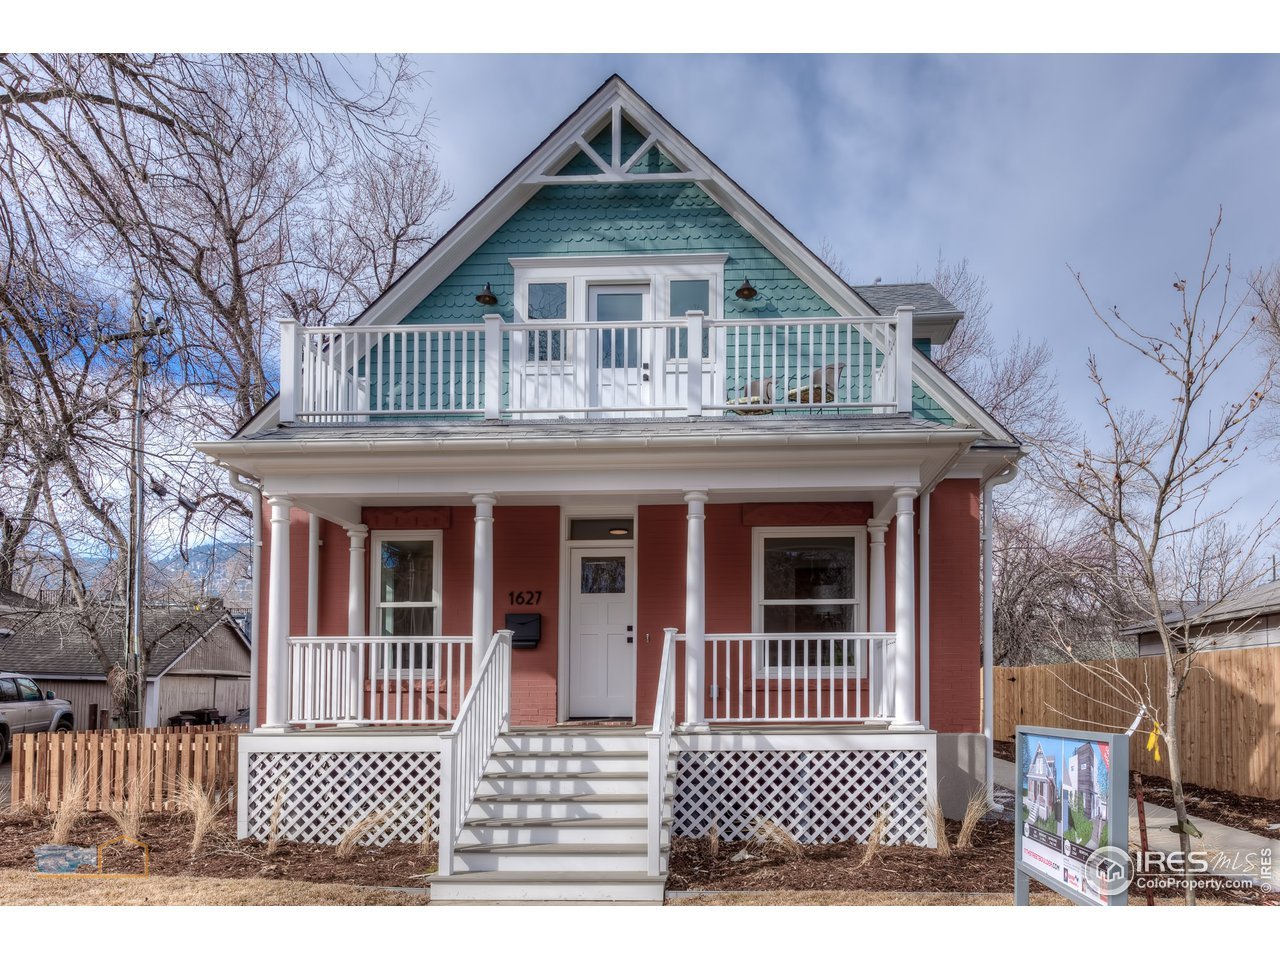 1627 17th St, Boulder CO 80302